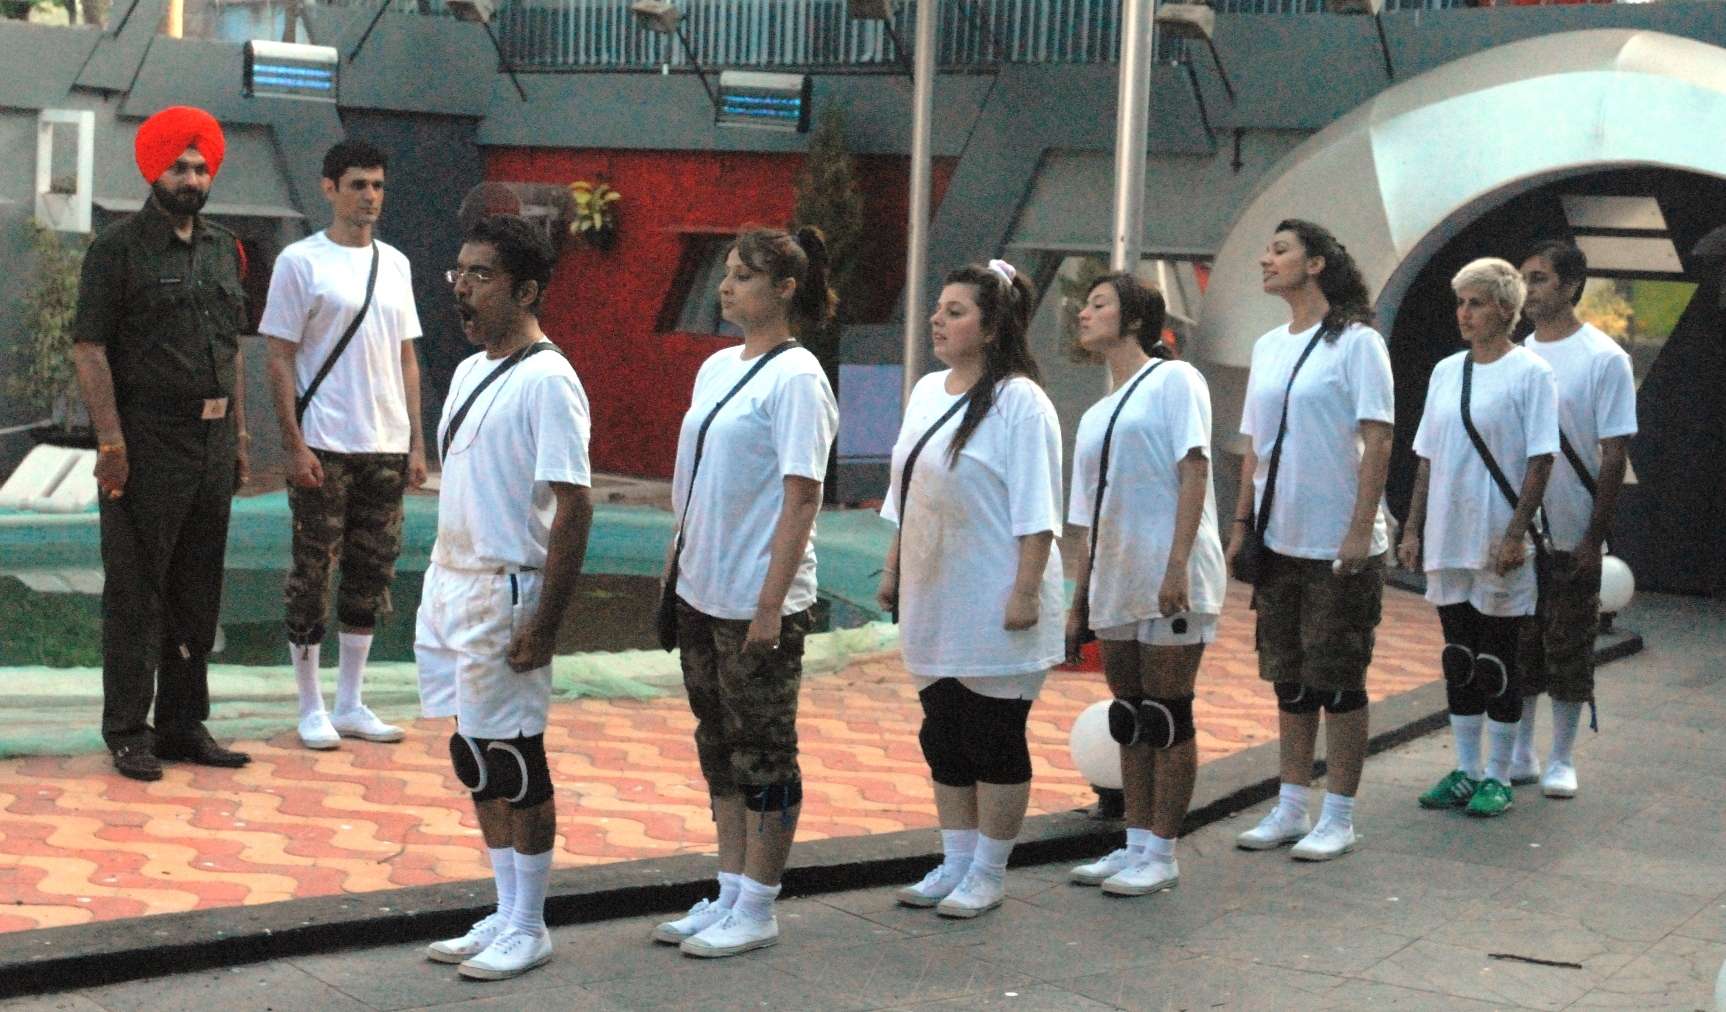 Bigg Boss announced a task called 'Major Saab Ki Sena', which was led by Sidhu. As the task started, Sidhu made all the inmates undergo a physical drill. Urvashi advised Mink to perform the task seriously, as it would help the housemates gain more points for their luxury budget. Sidhu informed one and all that he would coach them in order to test their individual physical endurance powers. Despite oppositions by some of the housemates, Sidhu remained unyielding and continued with the strenuous drill.